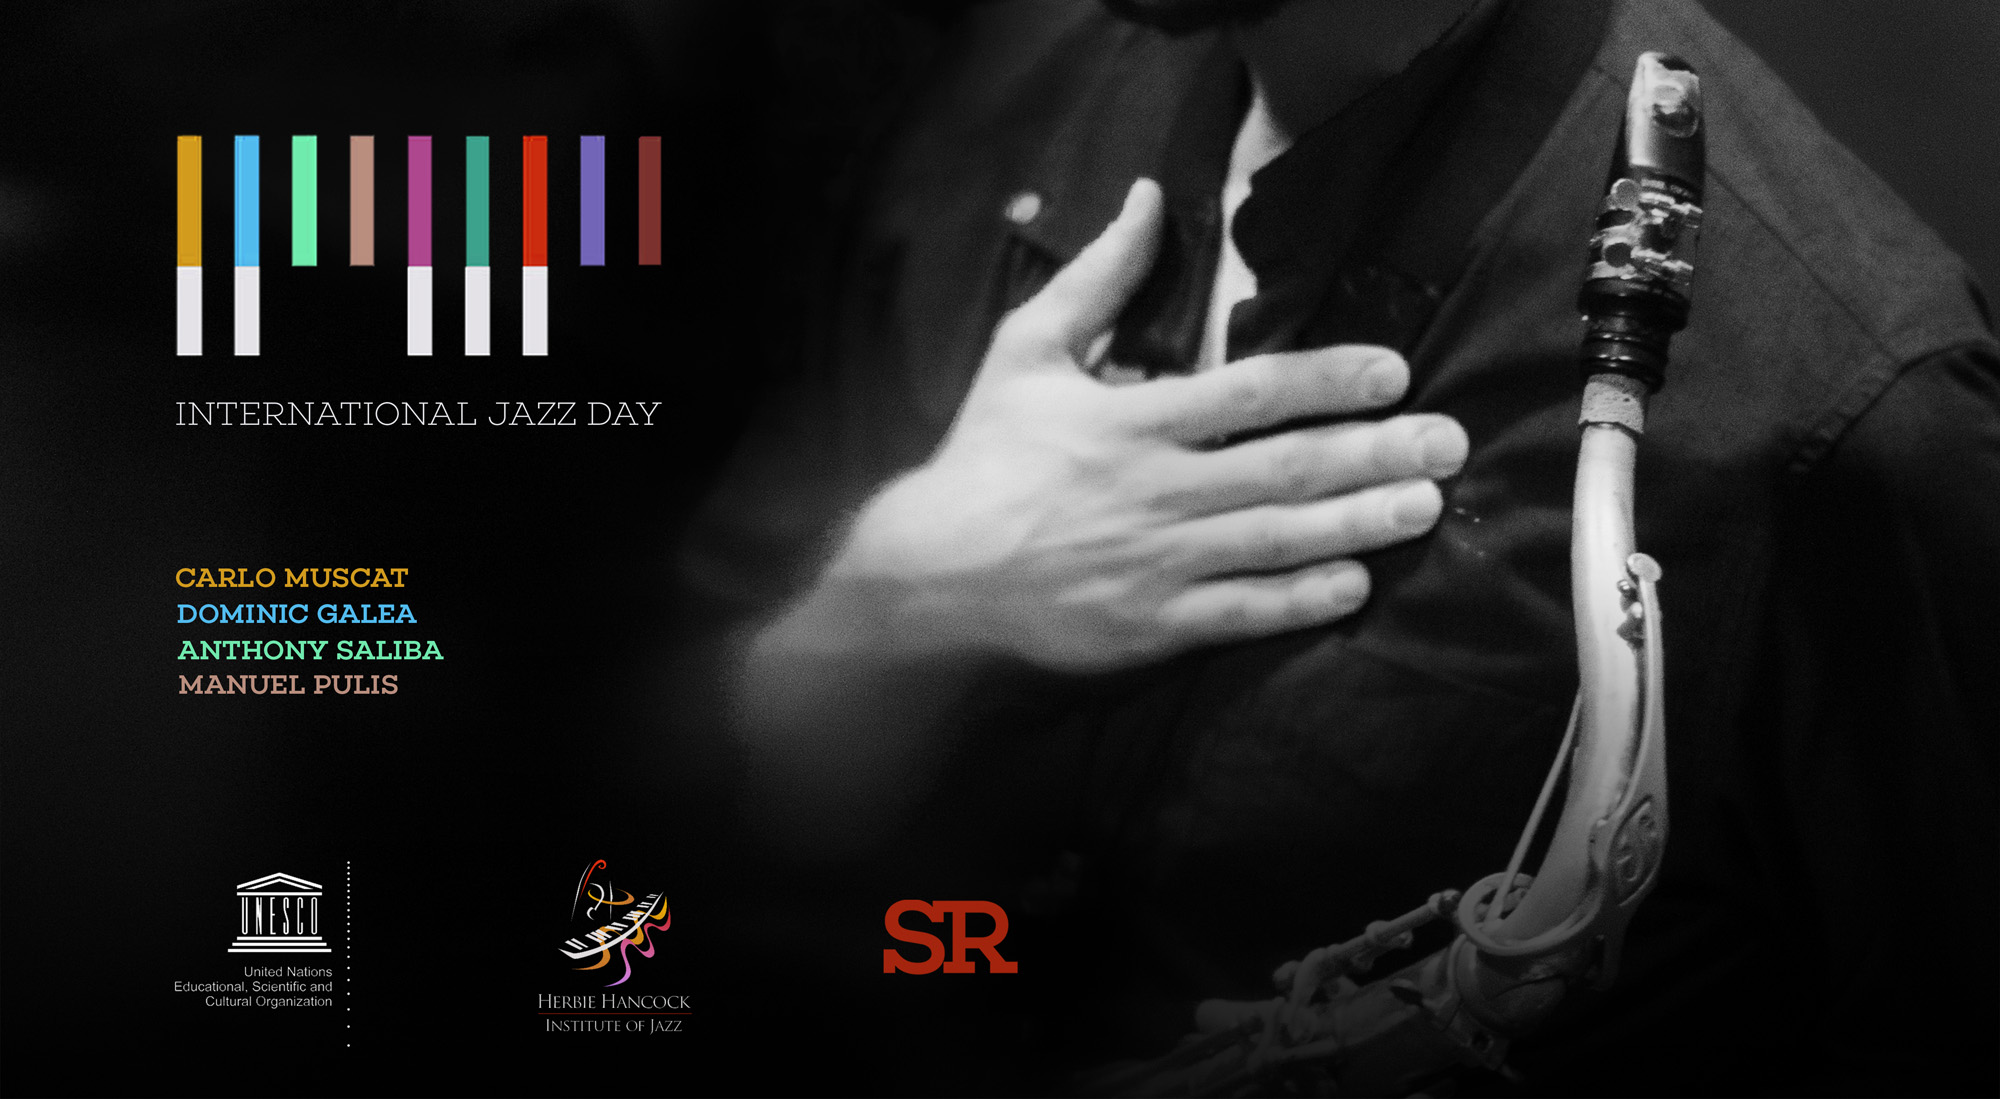 International Jazz Day Malta